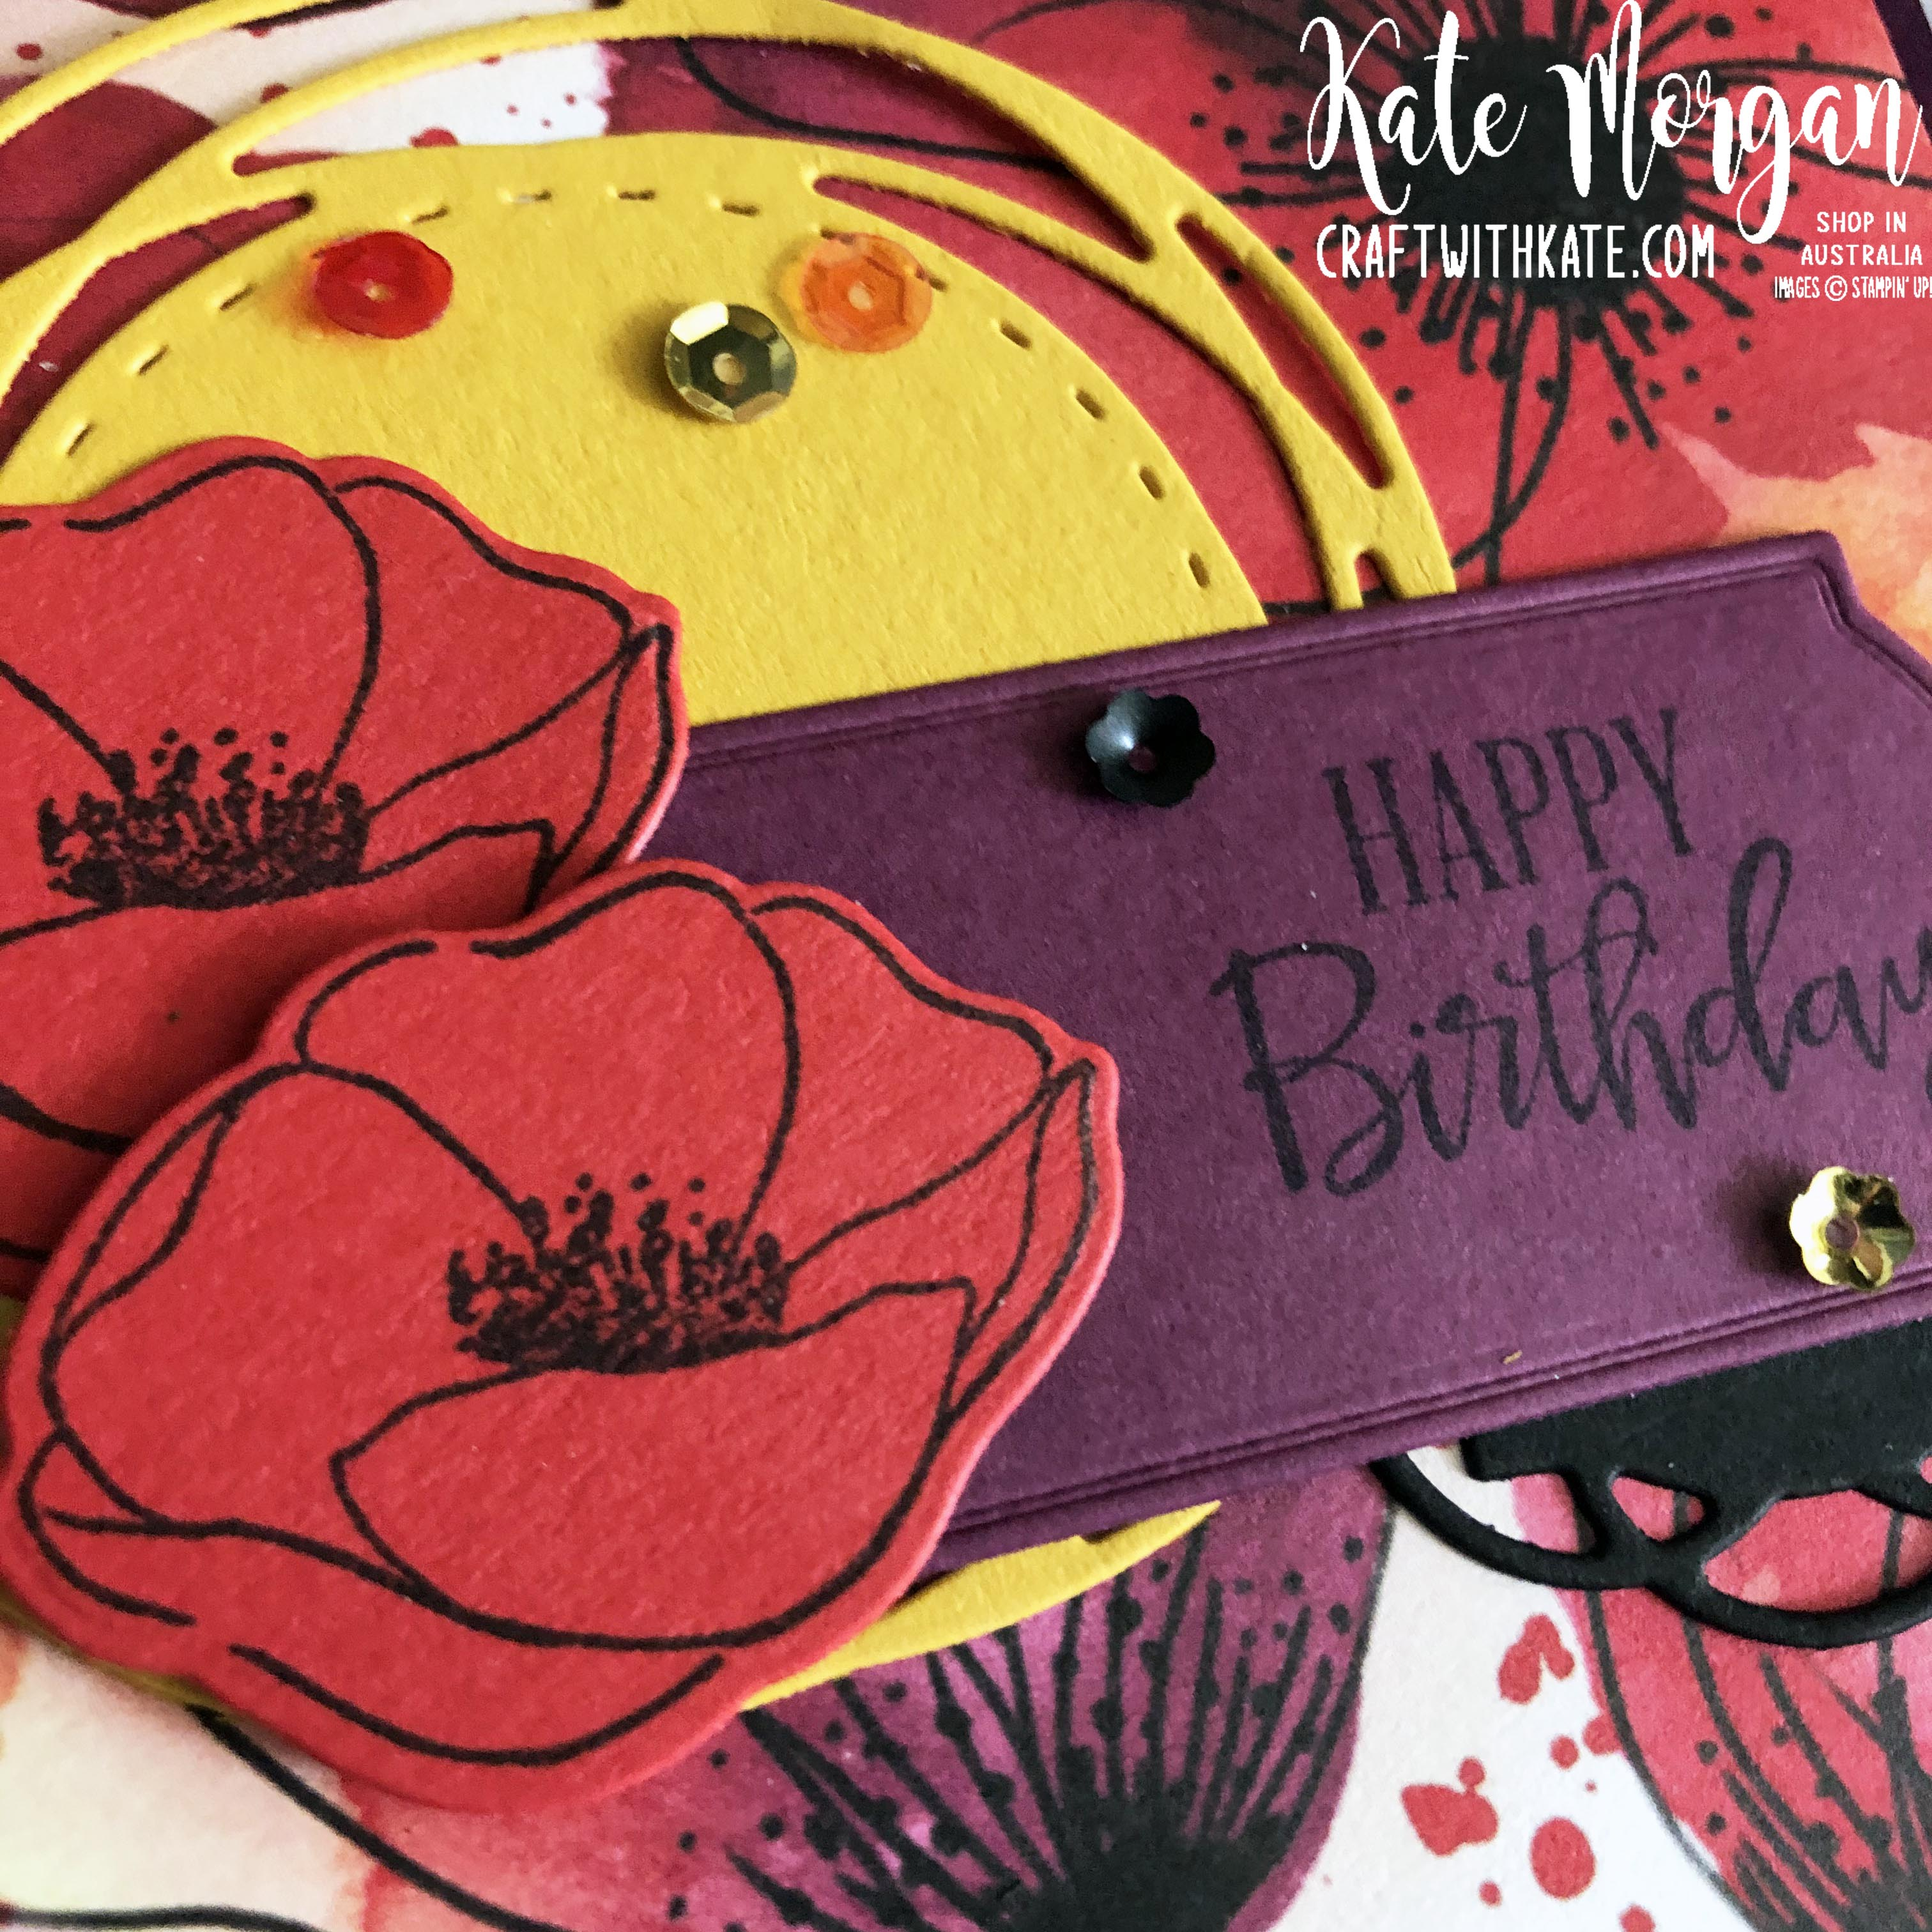 Peaceful Poppies Suite Stampin Up Mini 2020 by Kate Morgan Australia s